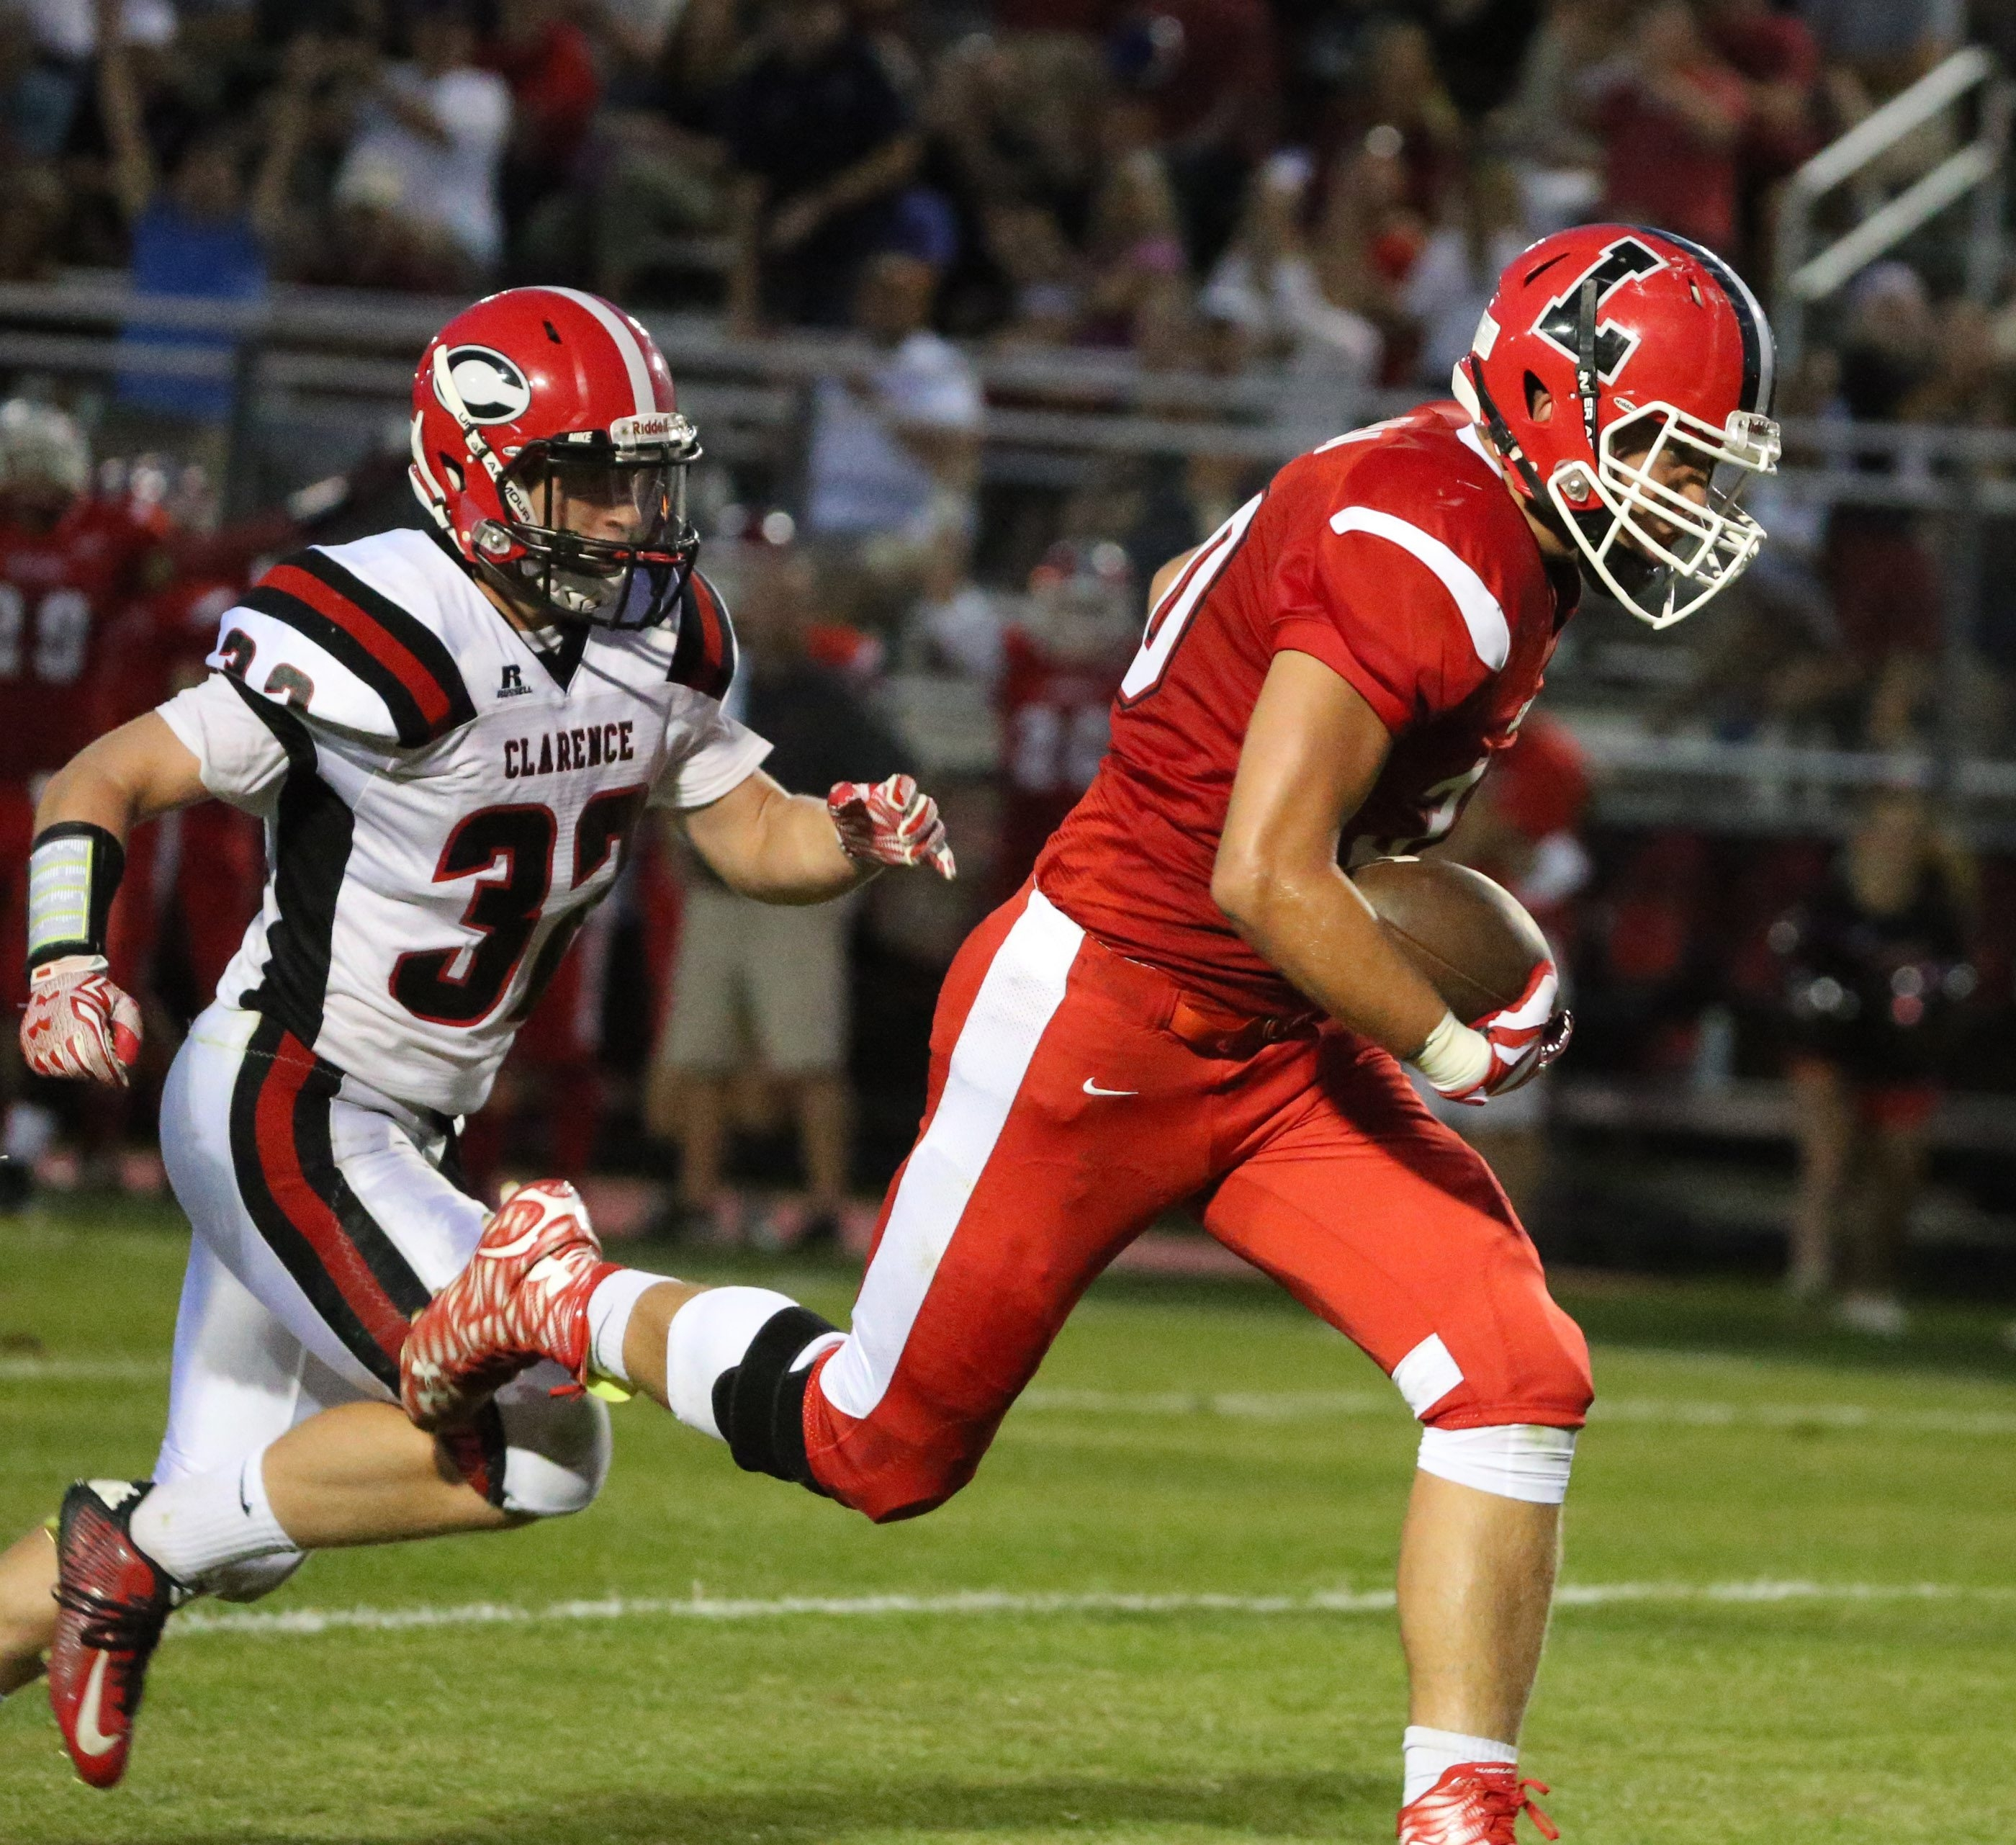 Alex Damiani catches a pass from Lancaster quarterback Dan Speyer in their 55-21 win over Clarence.